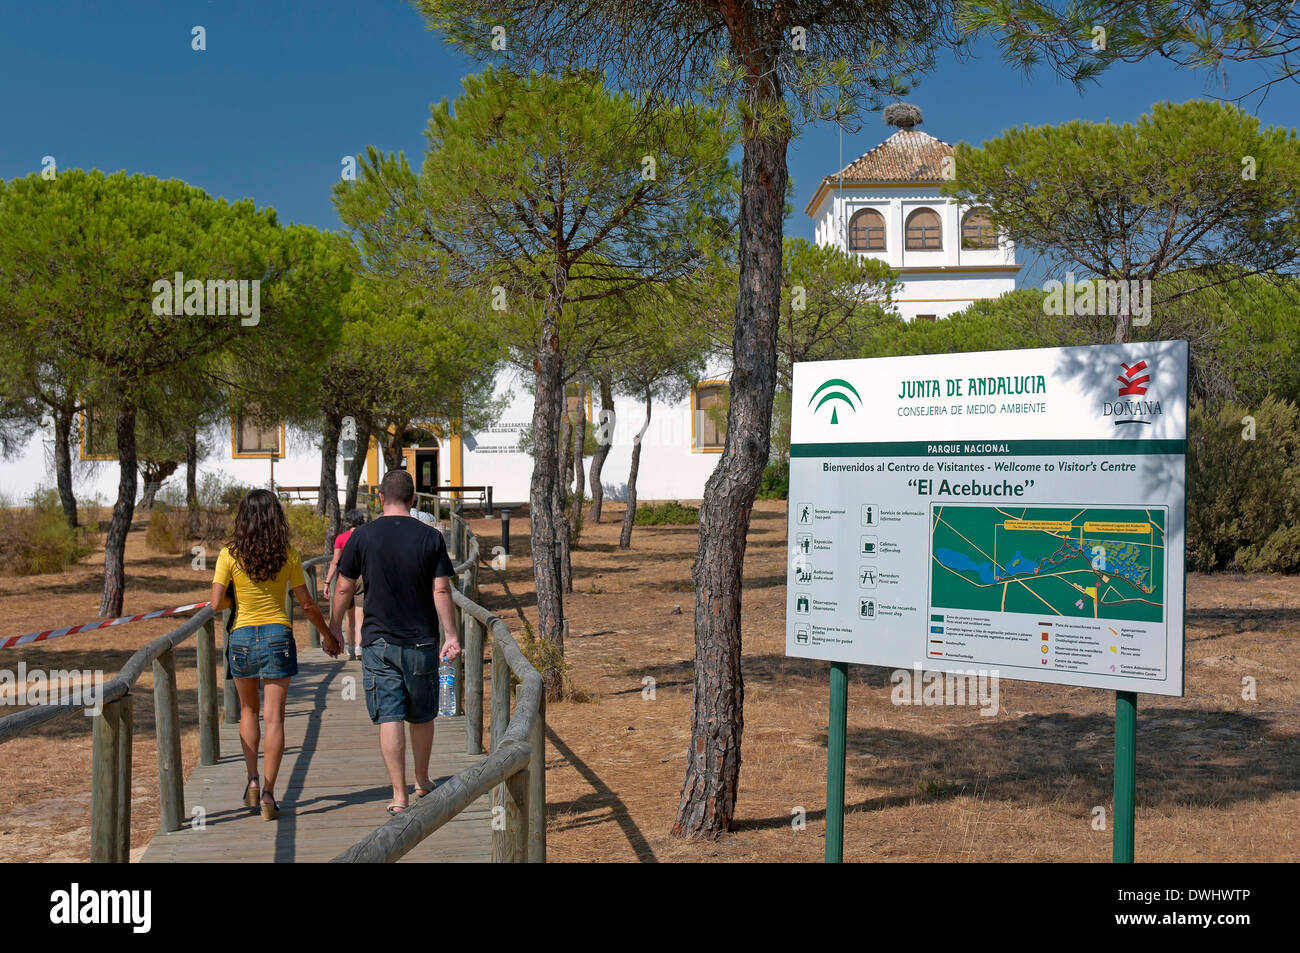 Visitors Center El Acebuche, Donana National Park, Almonte, Huelva province, Region of Andalusia, Spain, Europe Stock Photo